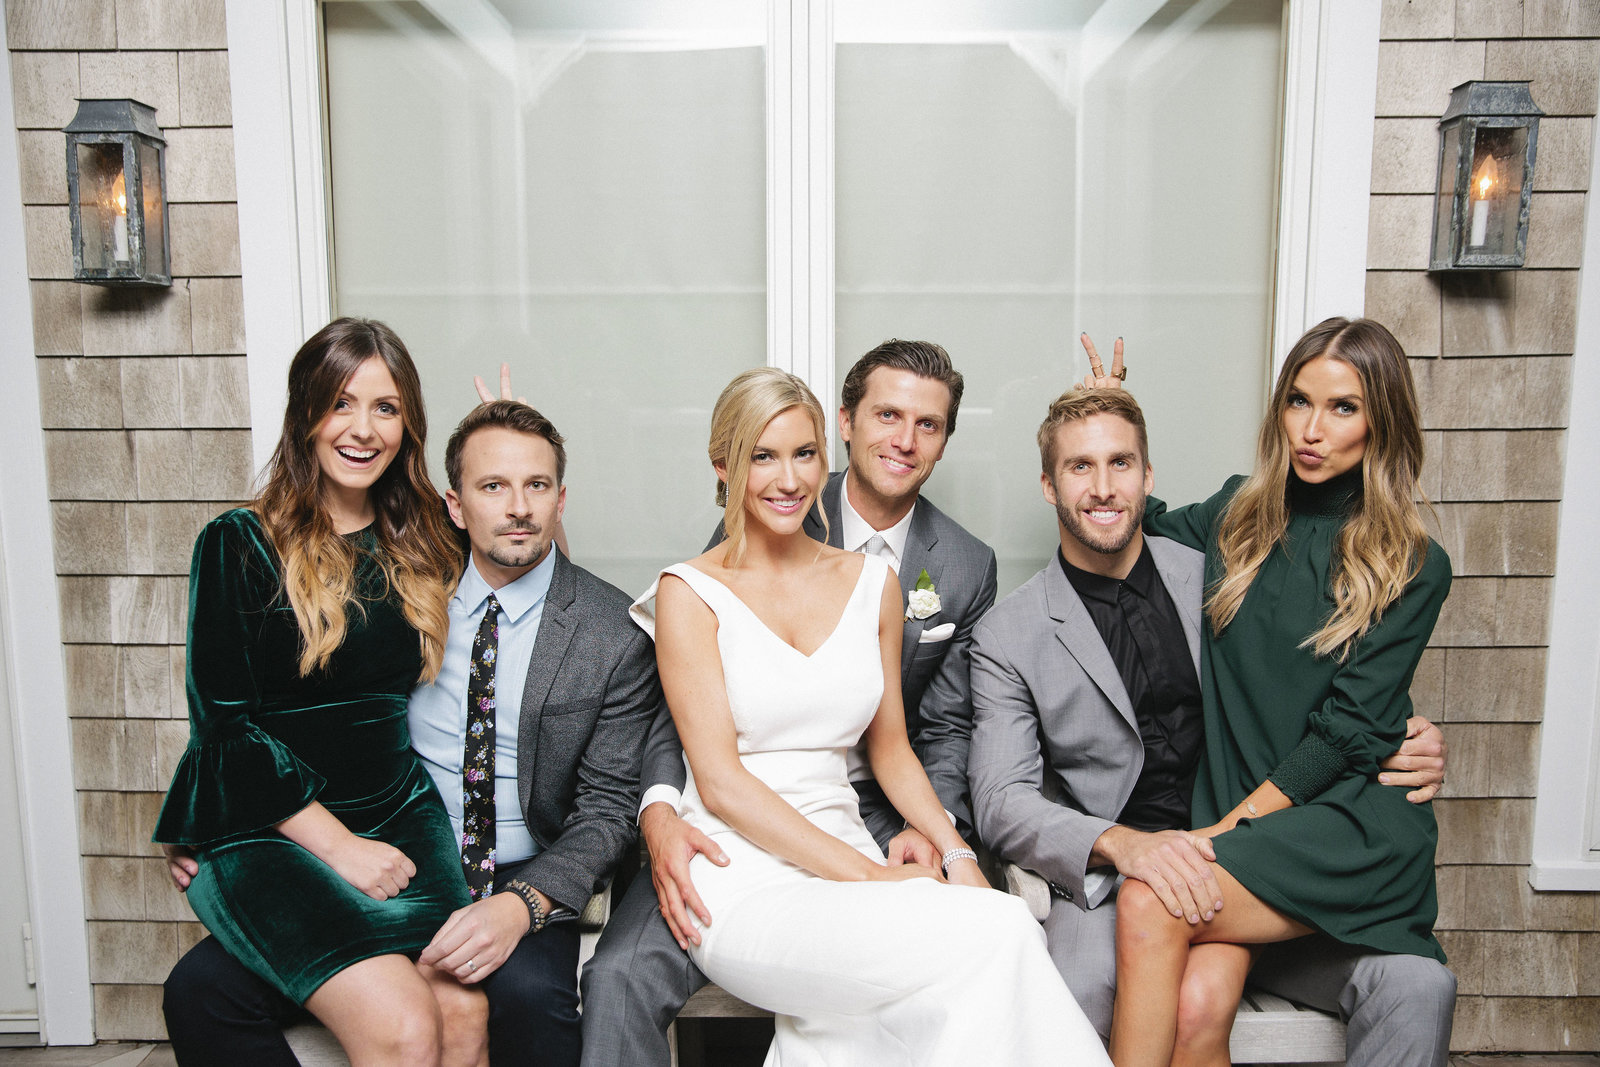 Kaitlyn Bristowe at Whitney Bischoff's Wedding